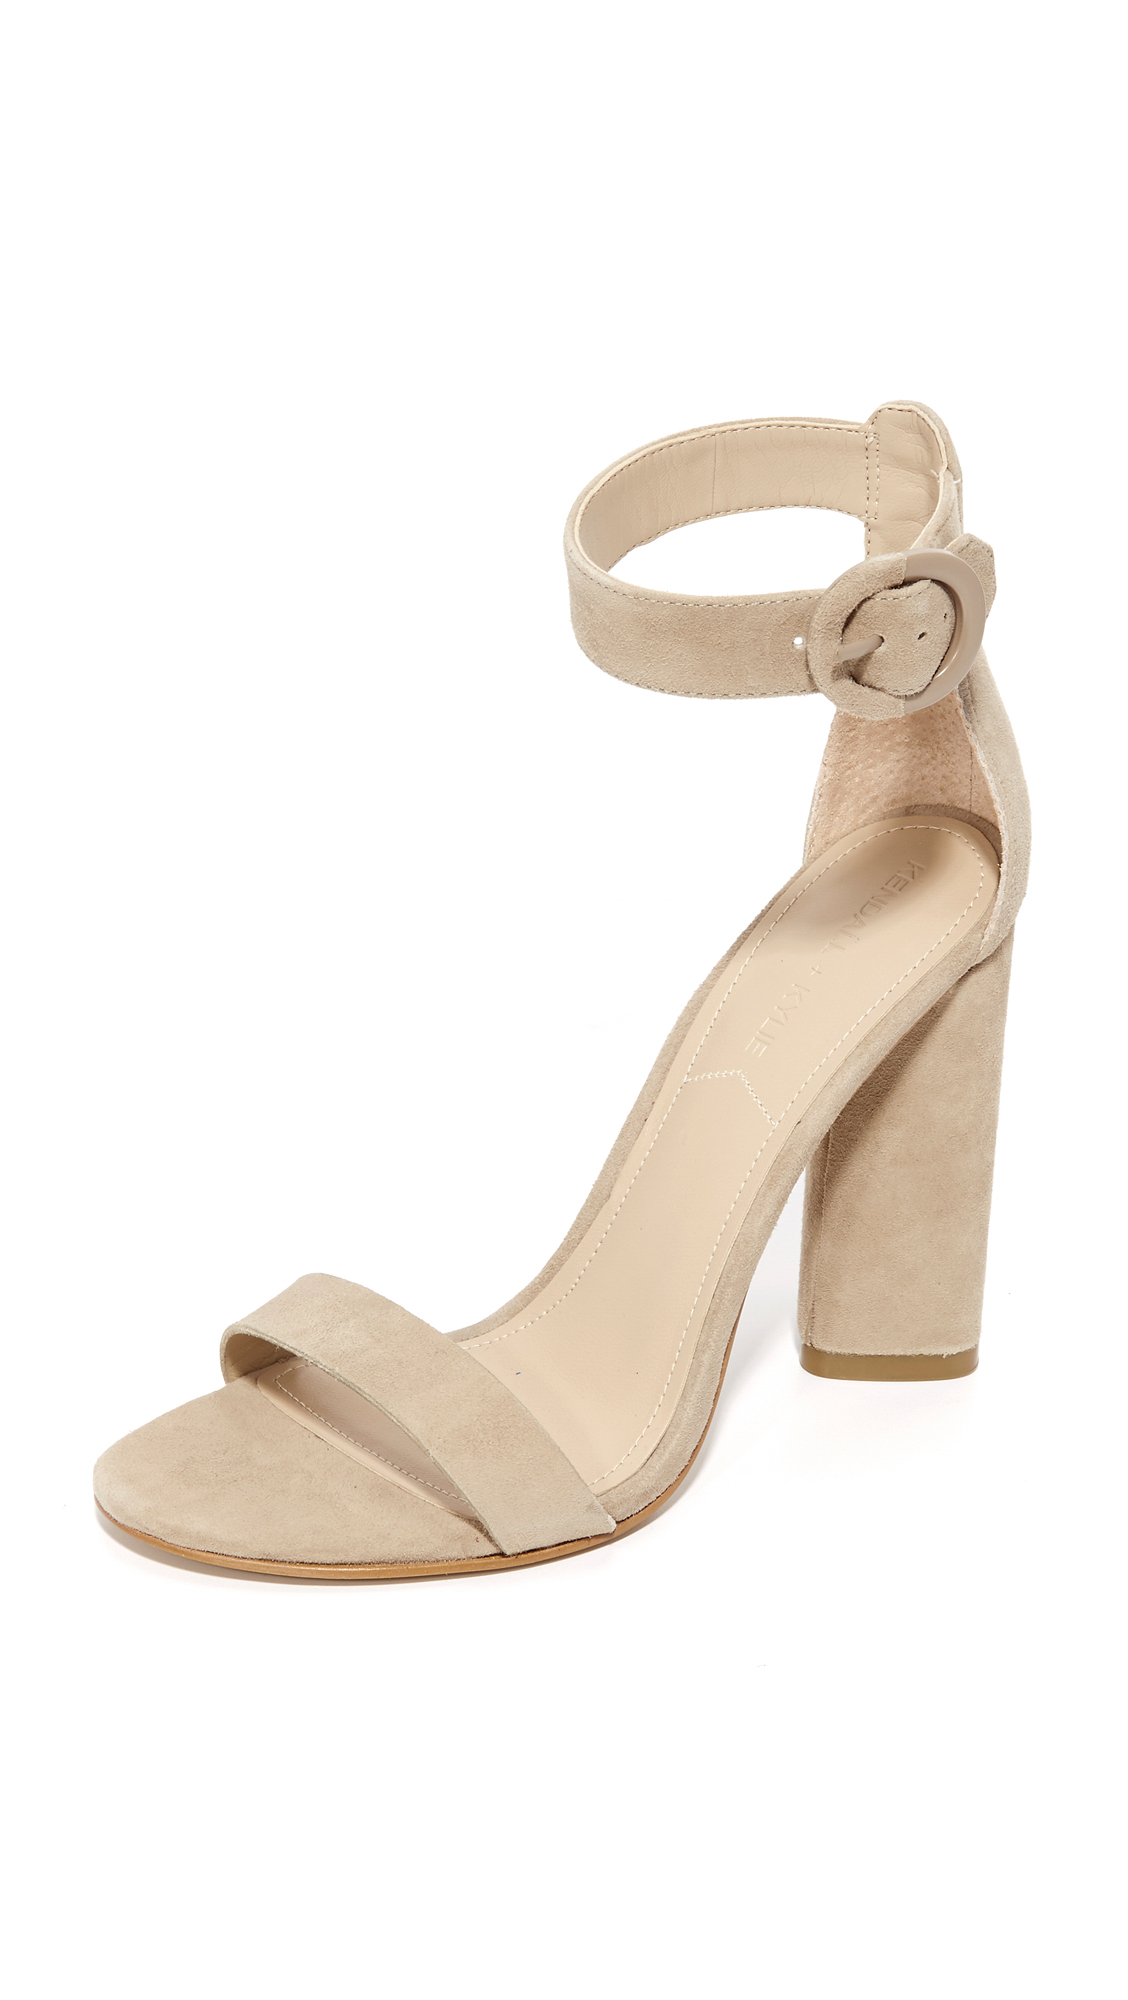 KENDALL + KYLIE Giselle 3 Sandals - Sughero